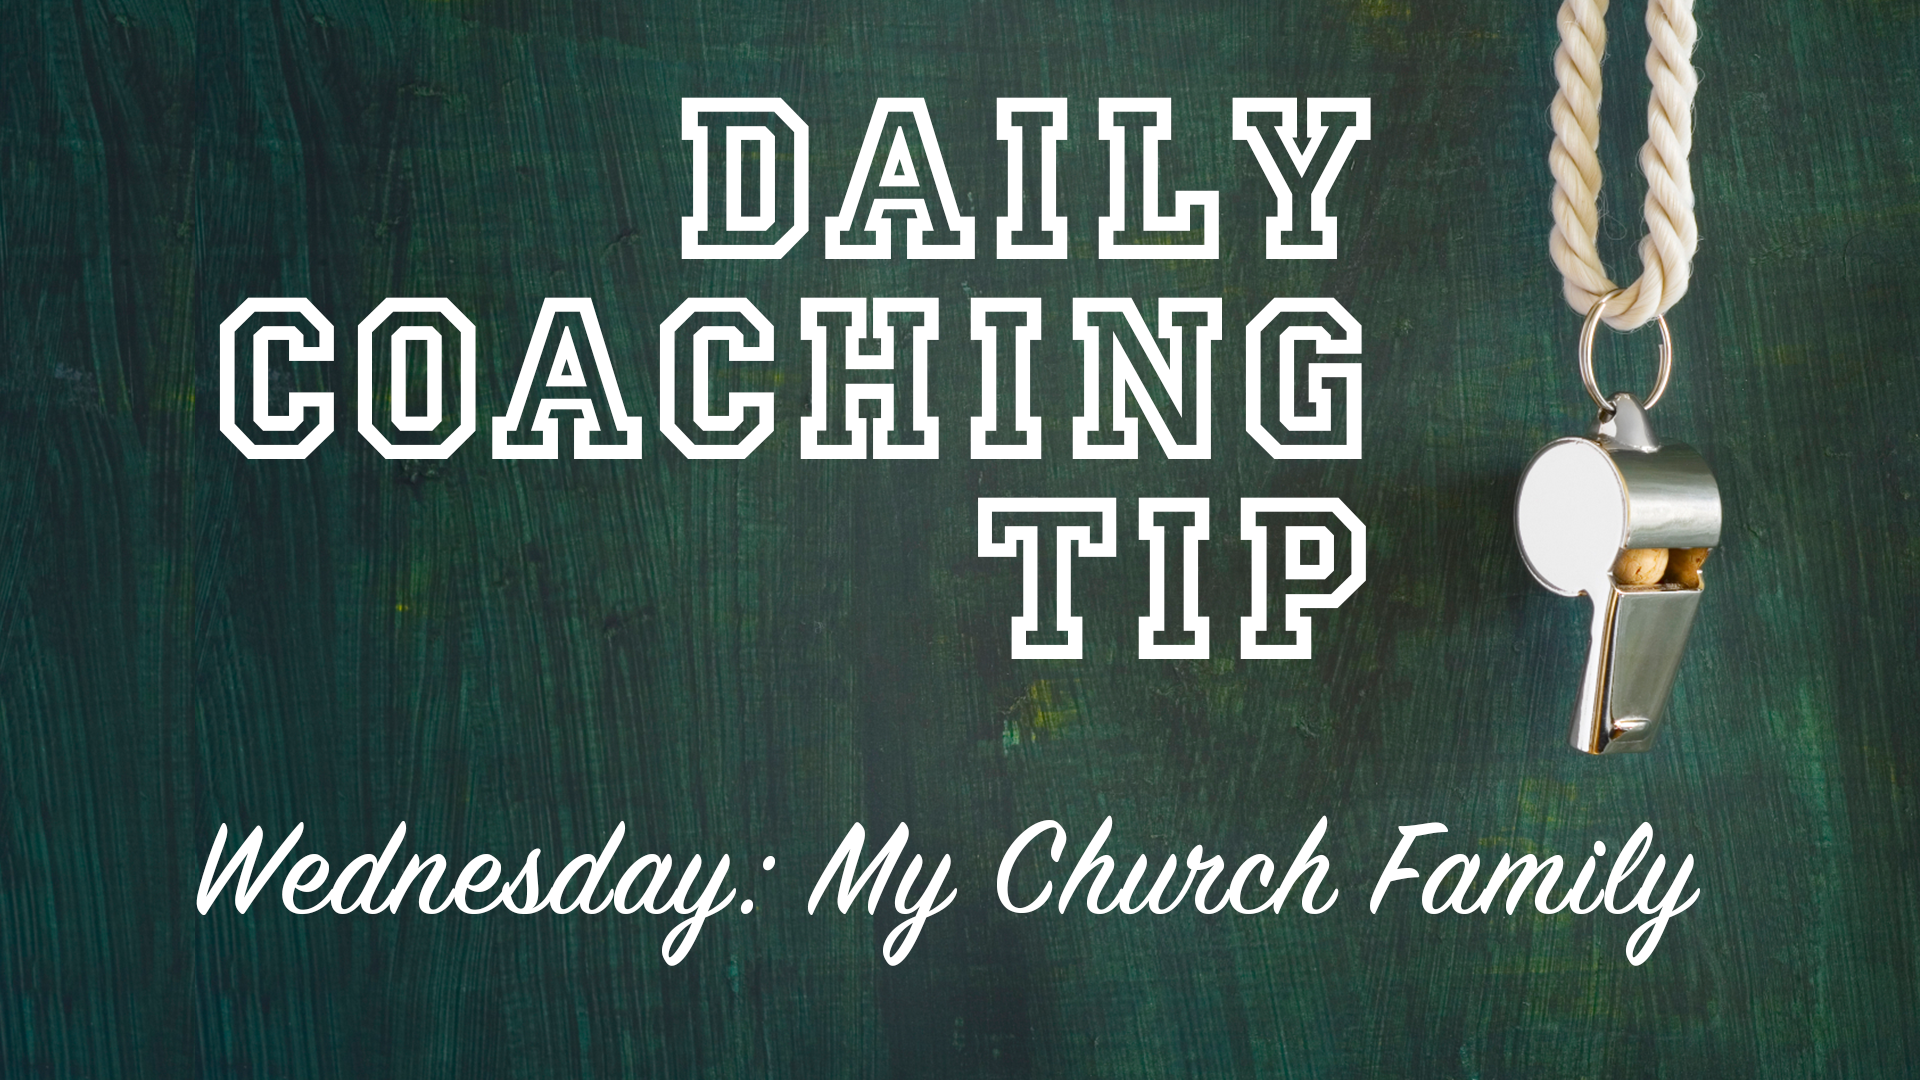 Daily Coaching Tip, Wednesday, April 20, 2016